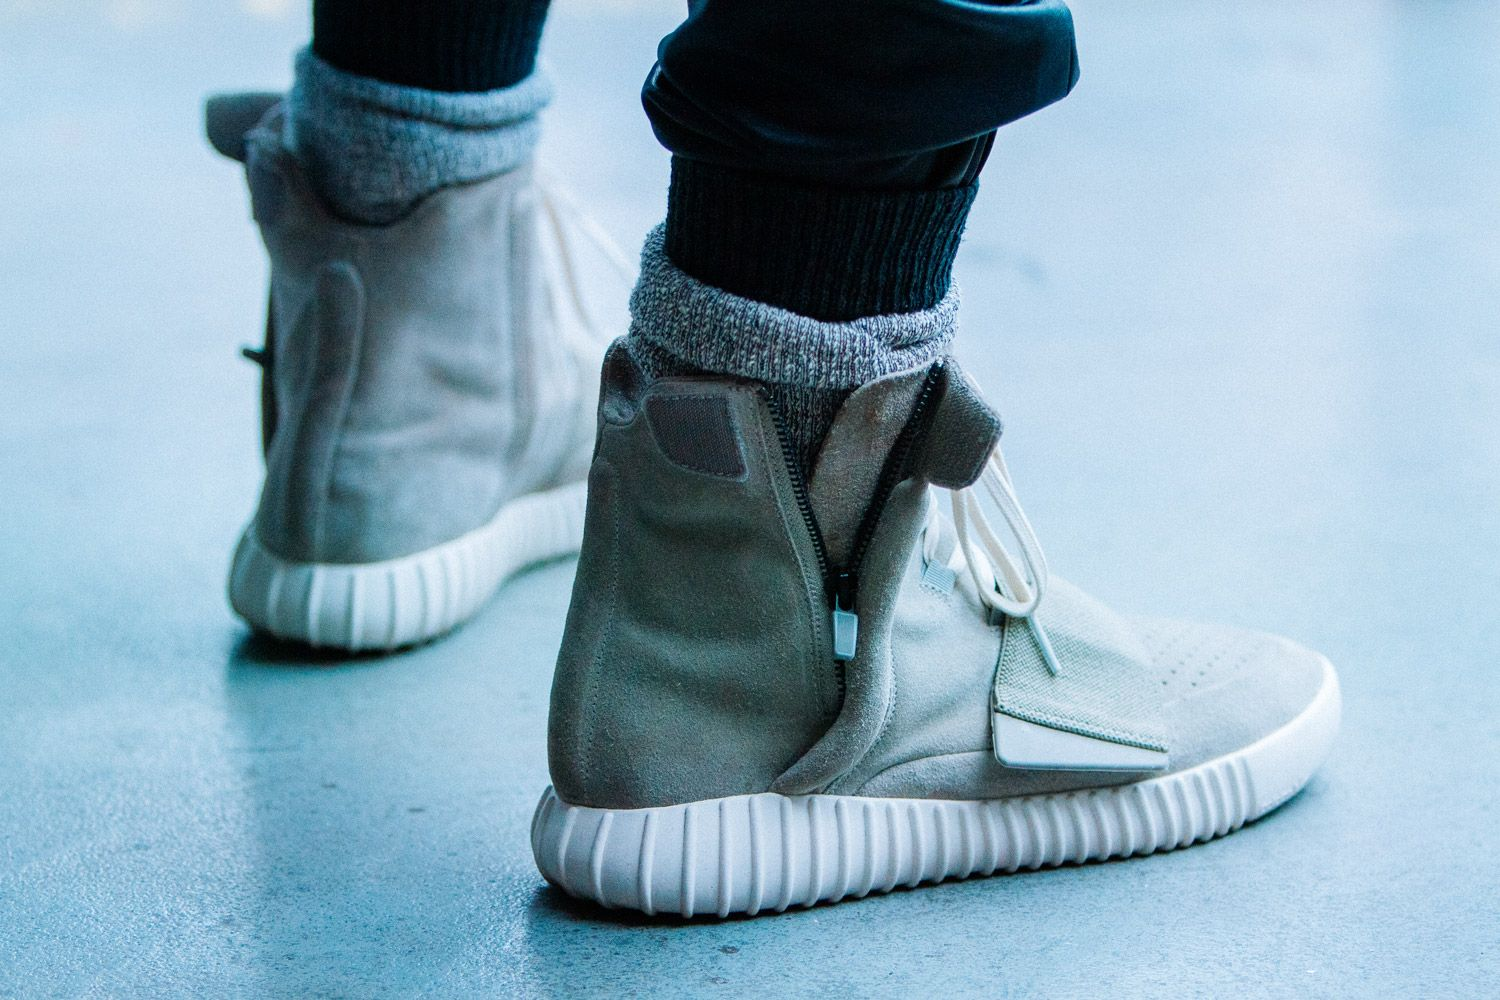 Kanye West's adidas Yeezy Season 1 Fashion Show just went down during New York Fashion Week, alongside streams in theaters all over the world. During the exclusive show he debuted a previously unseen low top variation of the adidas Yeezy Boost, in both white and black colorways as well as a fairly classic duck boot …